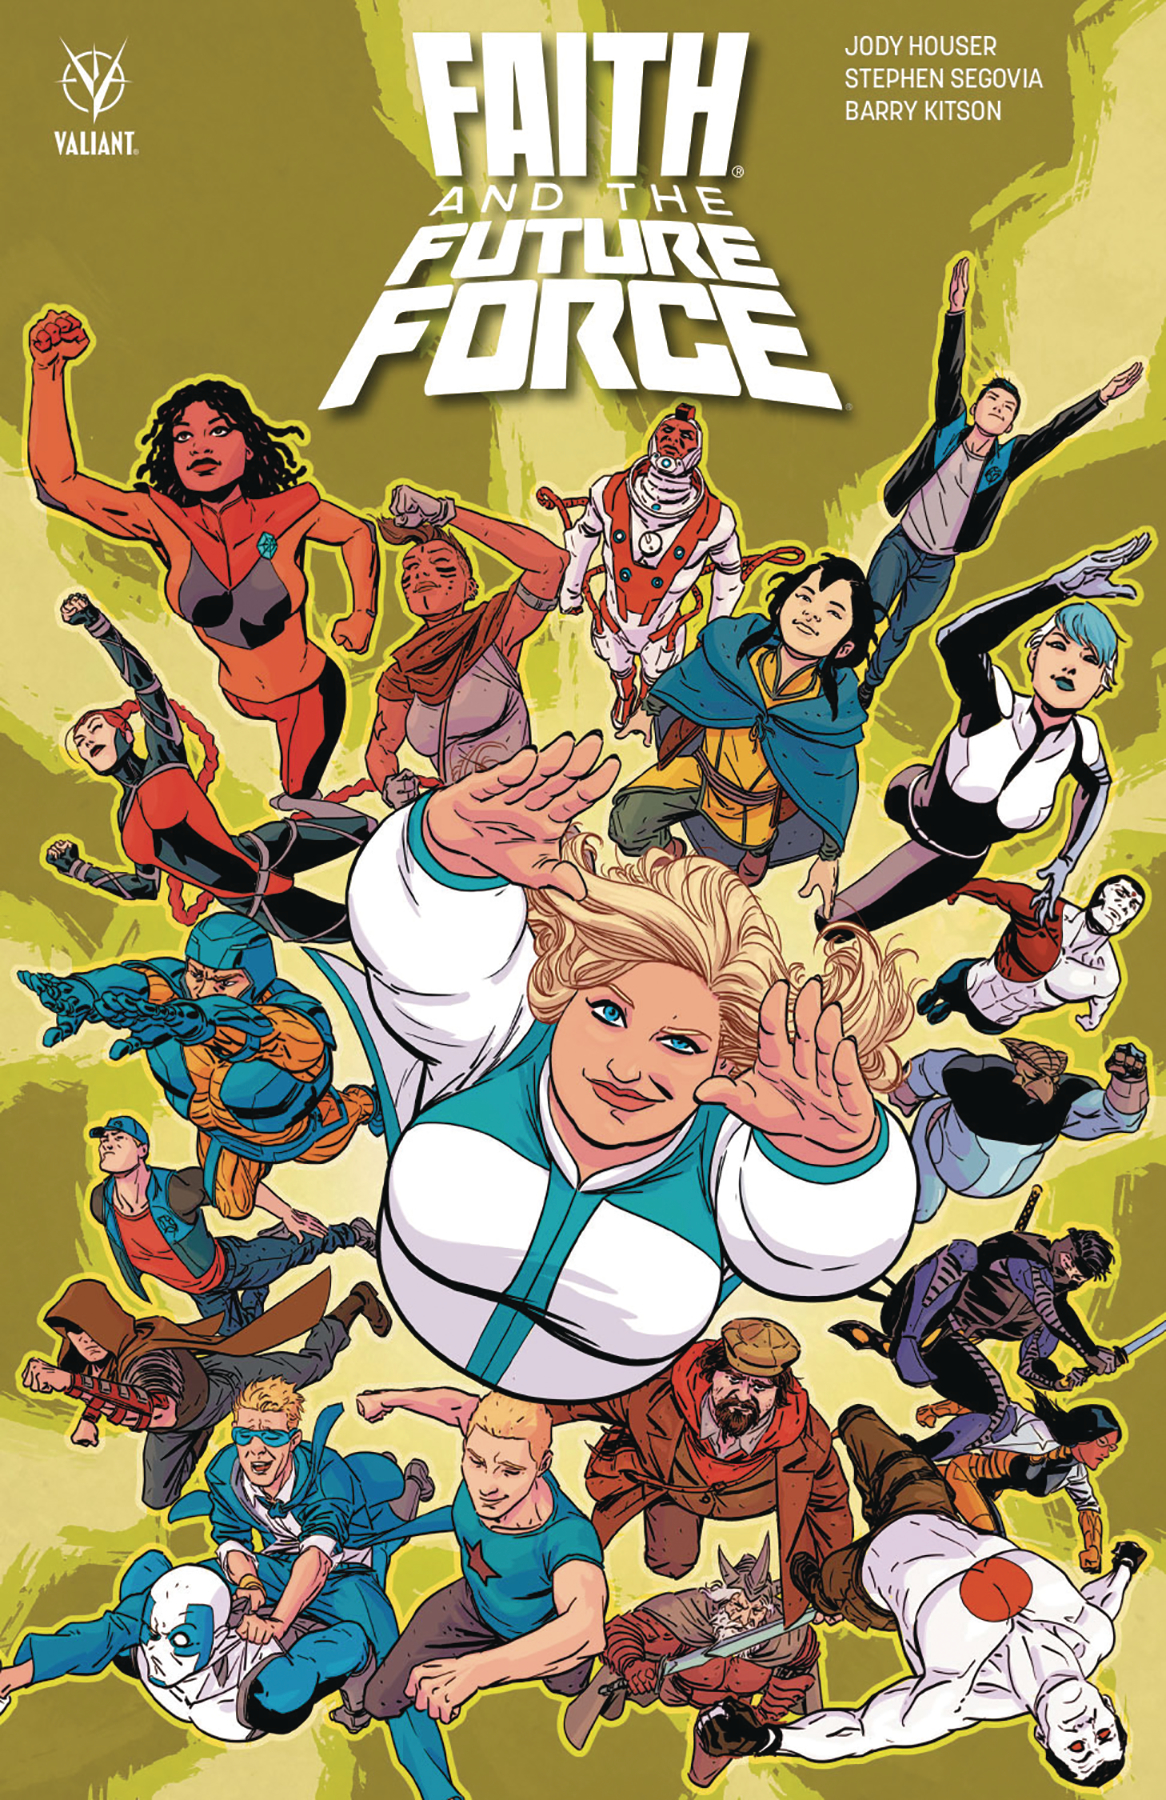 FAITH AND THE FUTURE FORCE TP